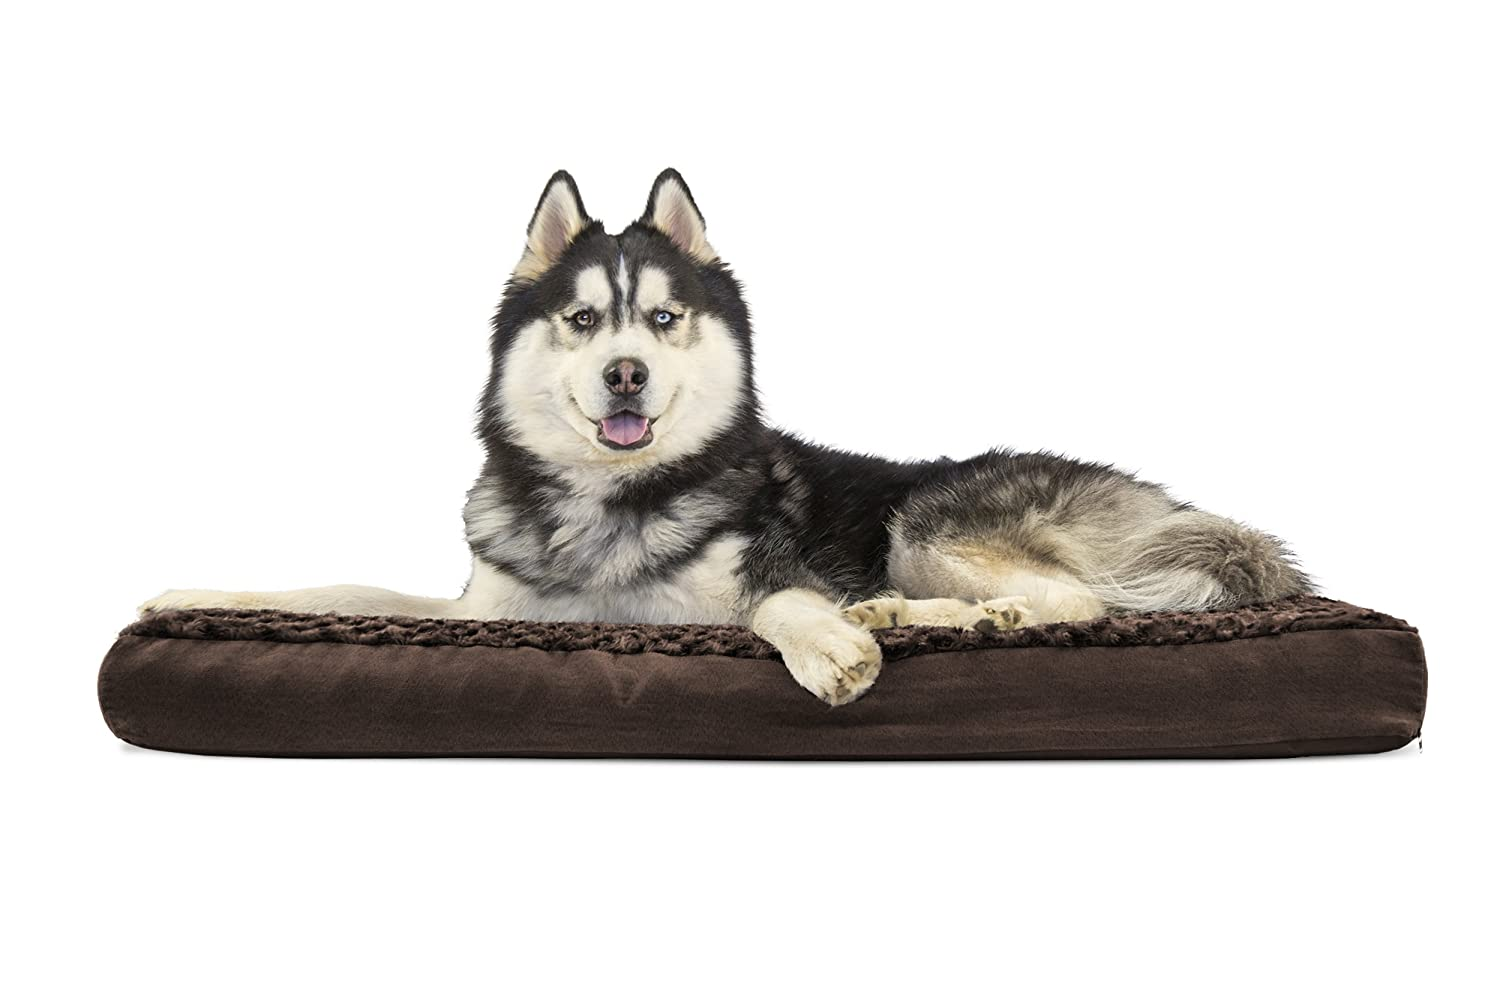 FurHaven Pet Dog Bed   Deluxe Memory Foam Ultra Plush Mattress Pet Bed for Dogs & Cats, Chocolate, Jumbo